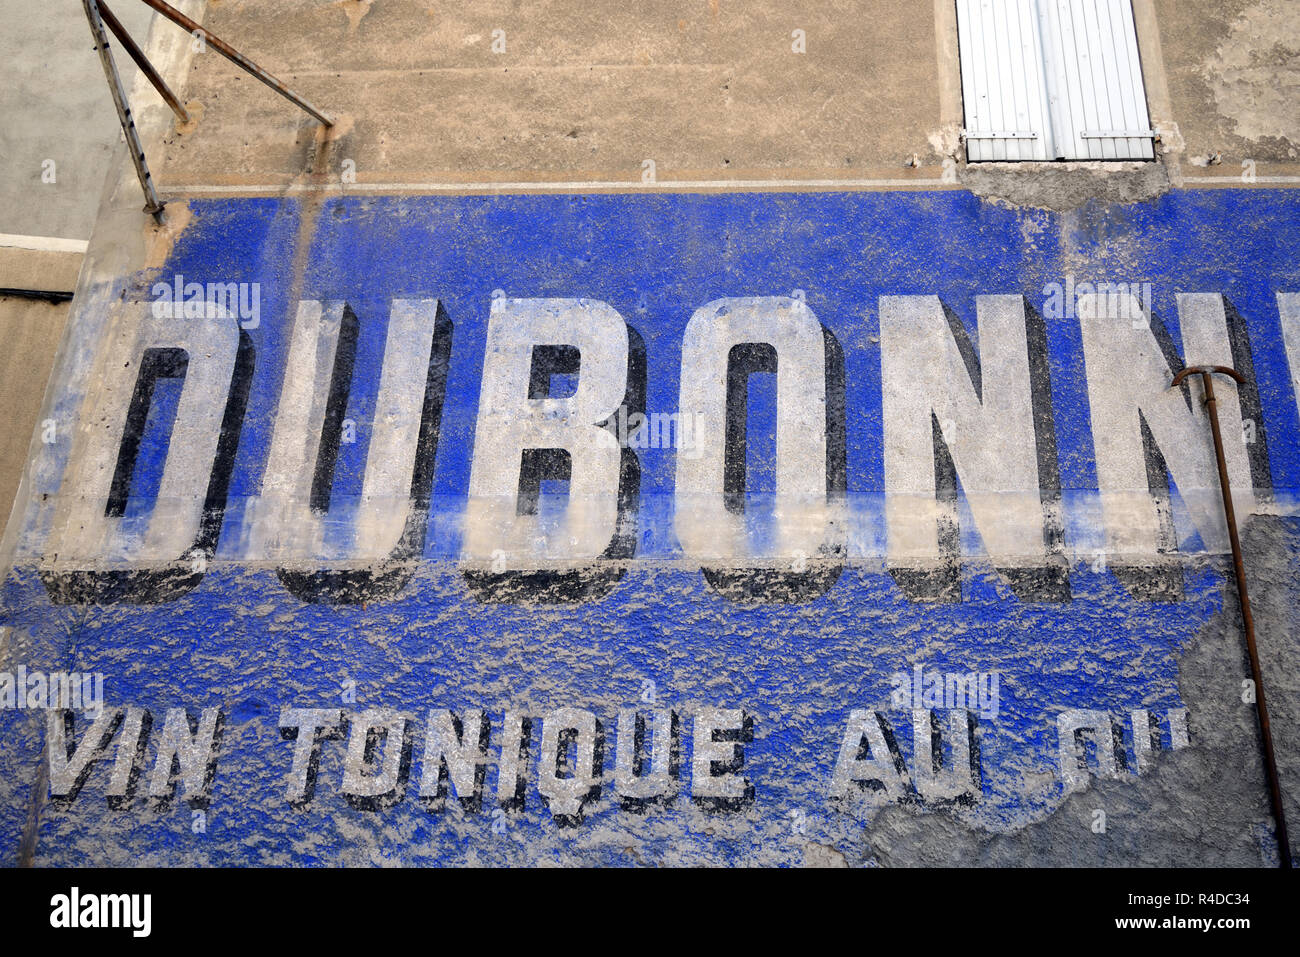 Old Painted Wall or Wall Painting of Dubonnet Advert, Advertisement or Publicity Sisteron Provence france - Stock Image